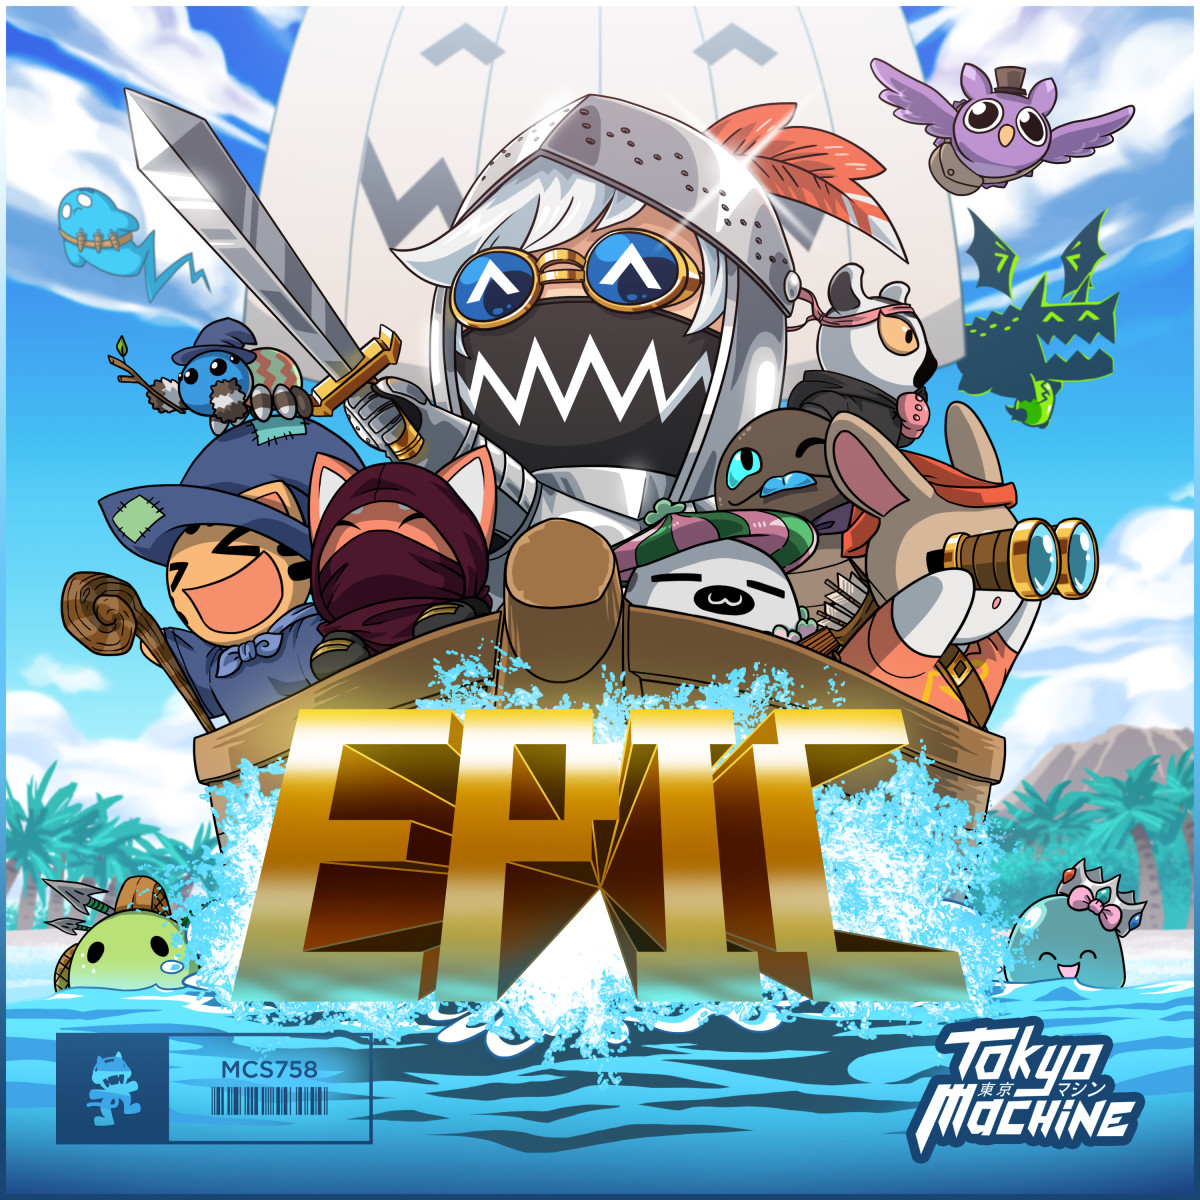 Art for EPIC by Tokyo Machine